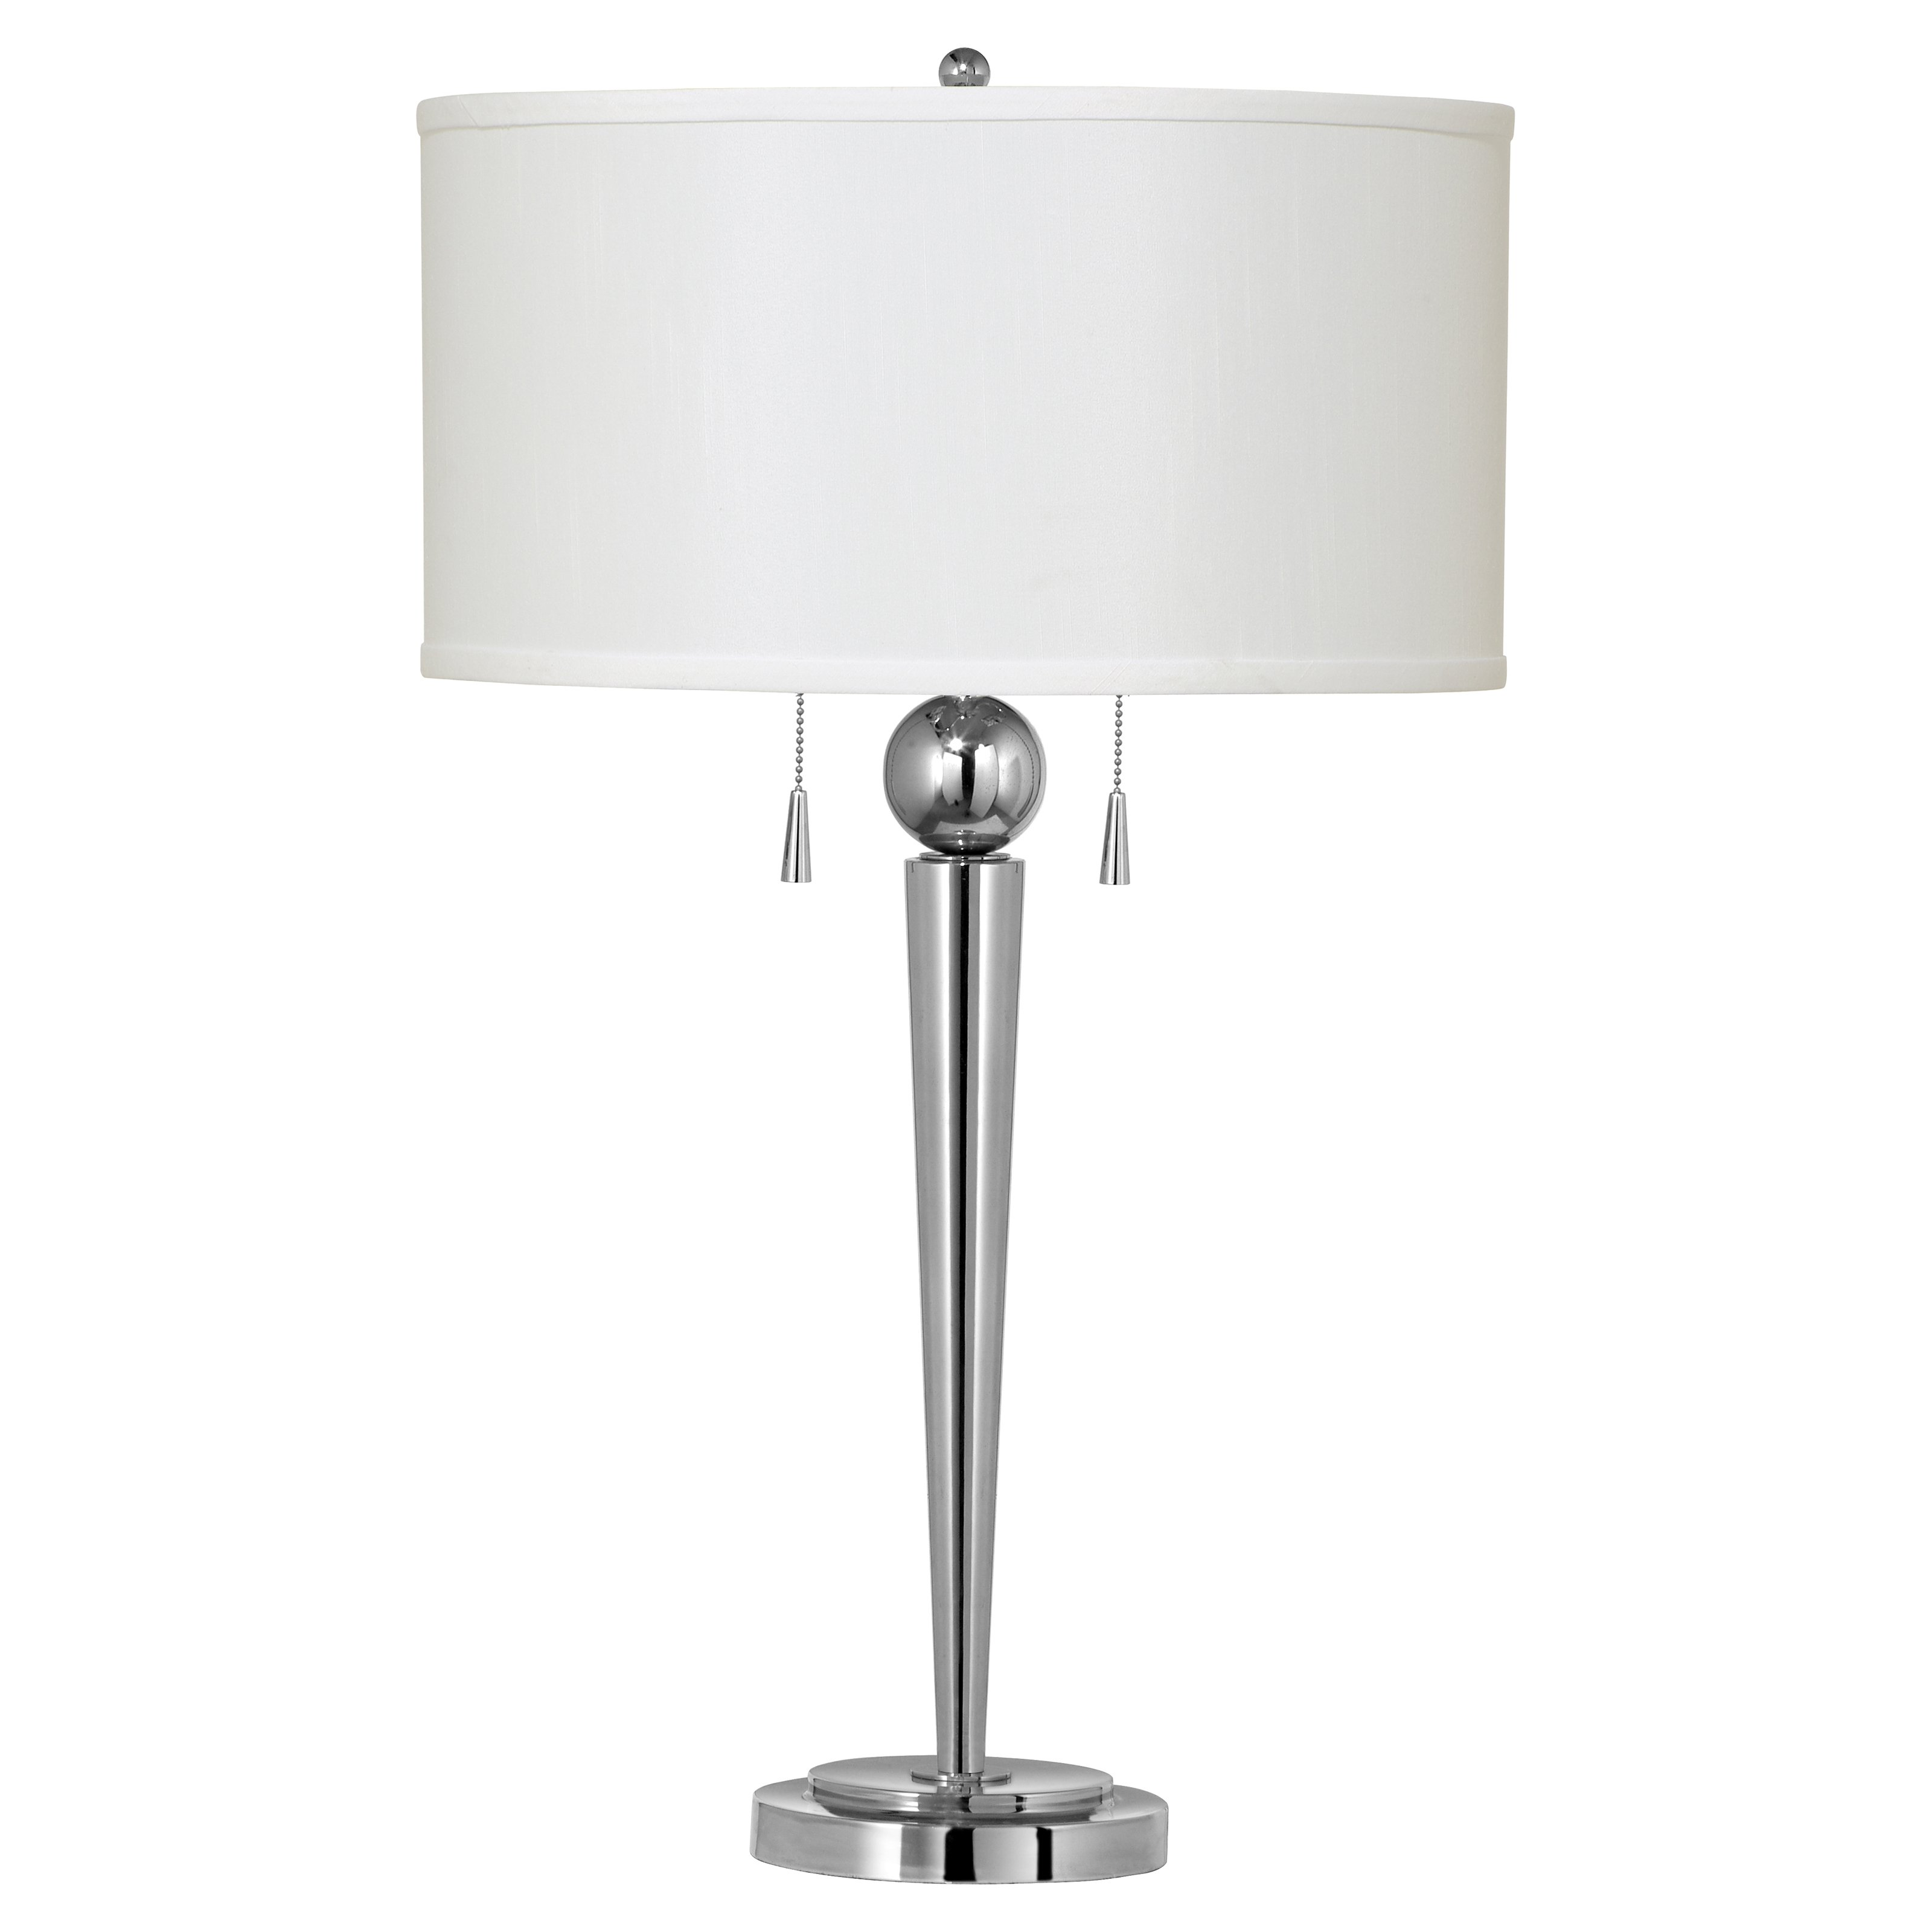 Cal Lighting BO-2007TB Messina Metal Table Lamp with Pull Chain Switch by CAL Lighting